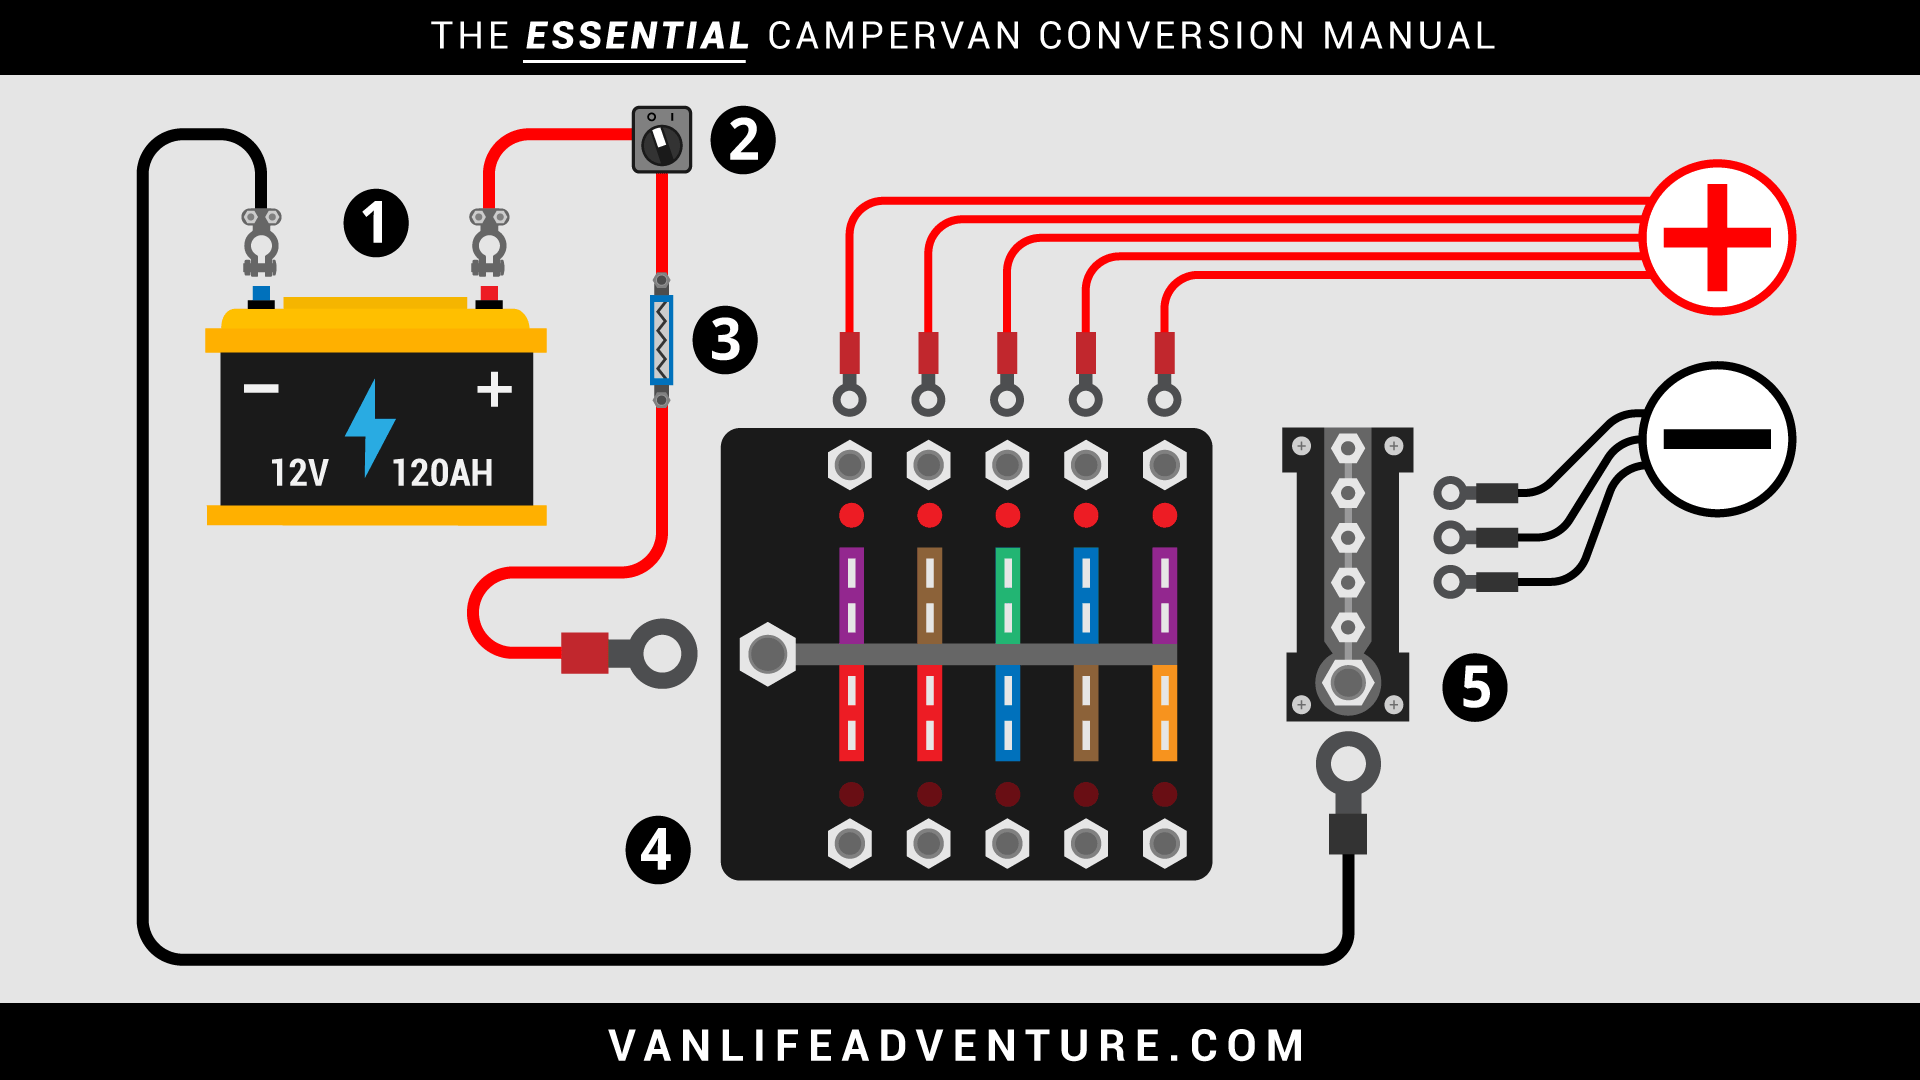 Campervan Wiring Diagram With Inverter from www.vanlifeadventure.com